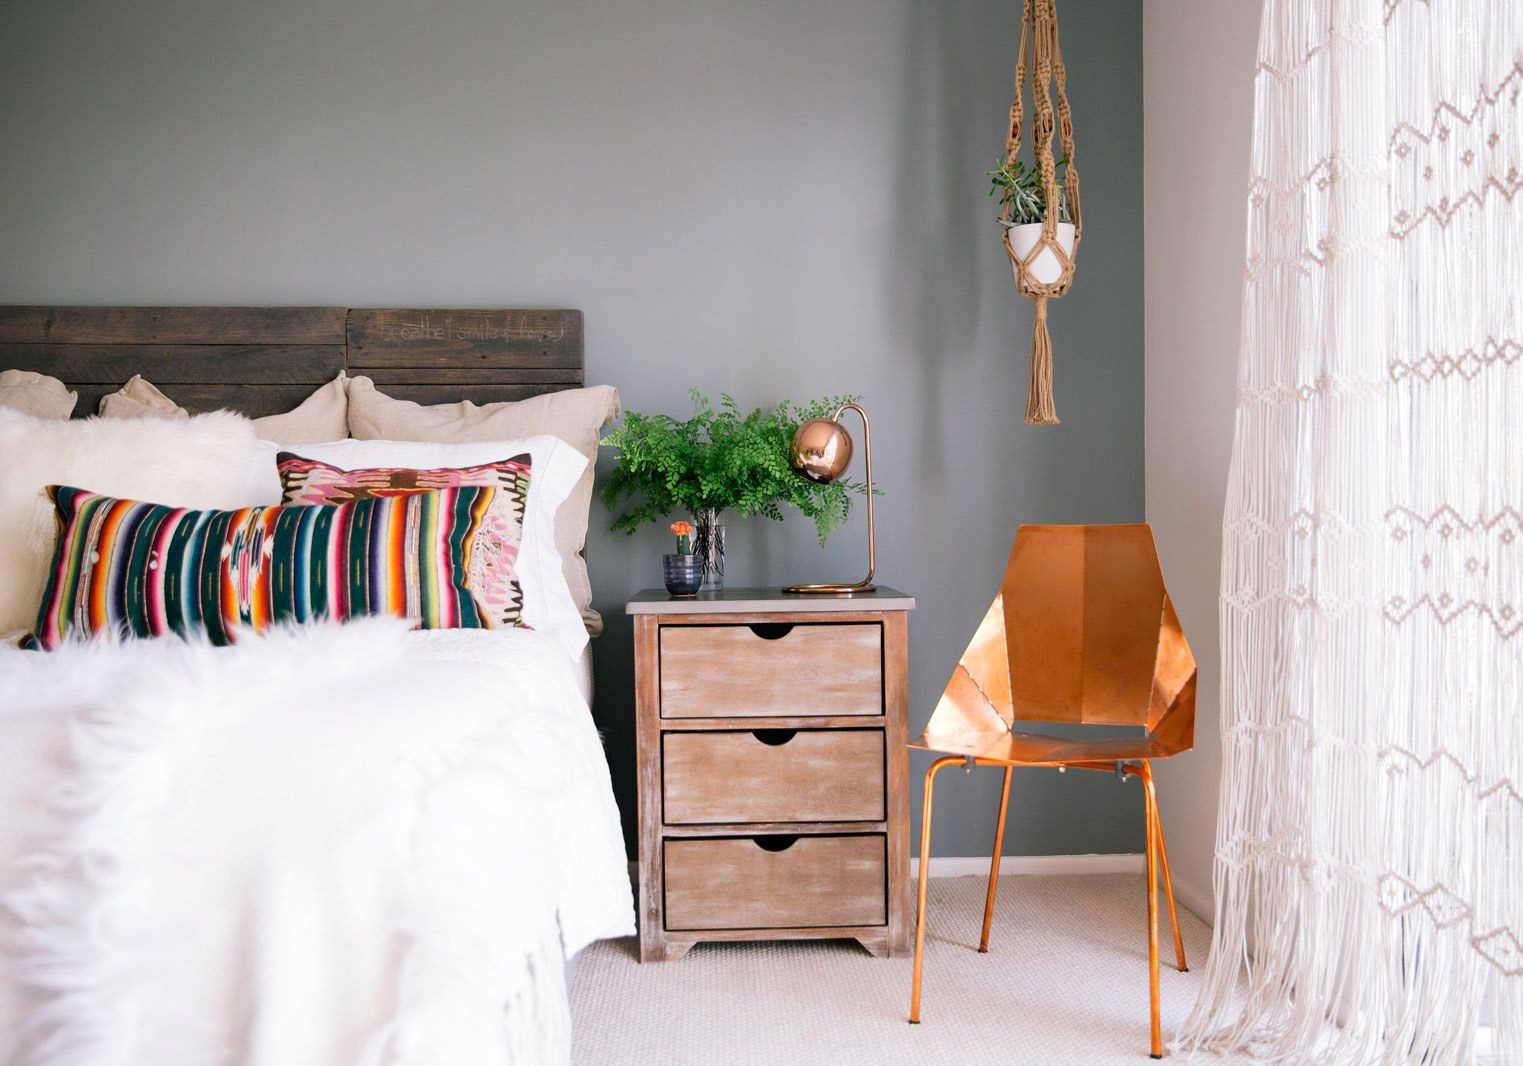 In this bedroom, neutral tones, light and dark distressed wood, botanical accents, and copper chair meet to bring forth effortless vintage chic vibes.